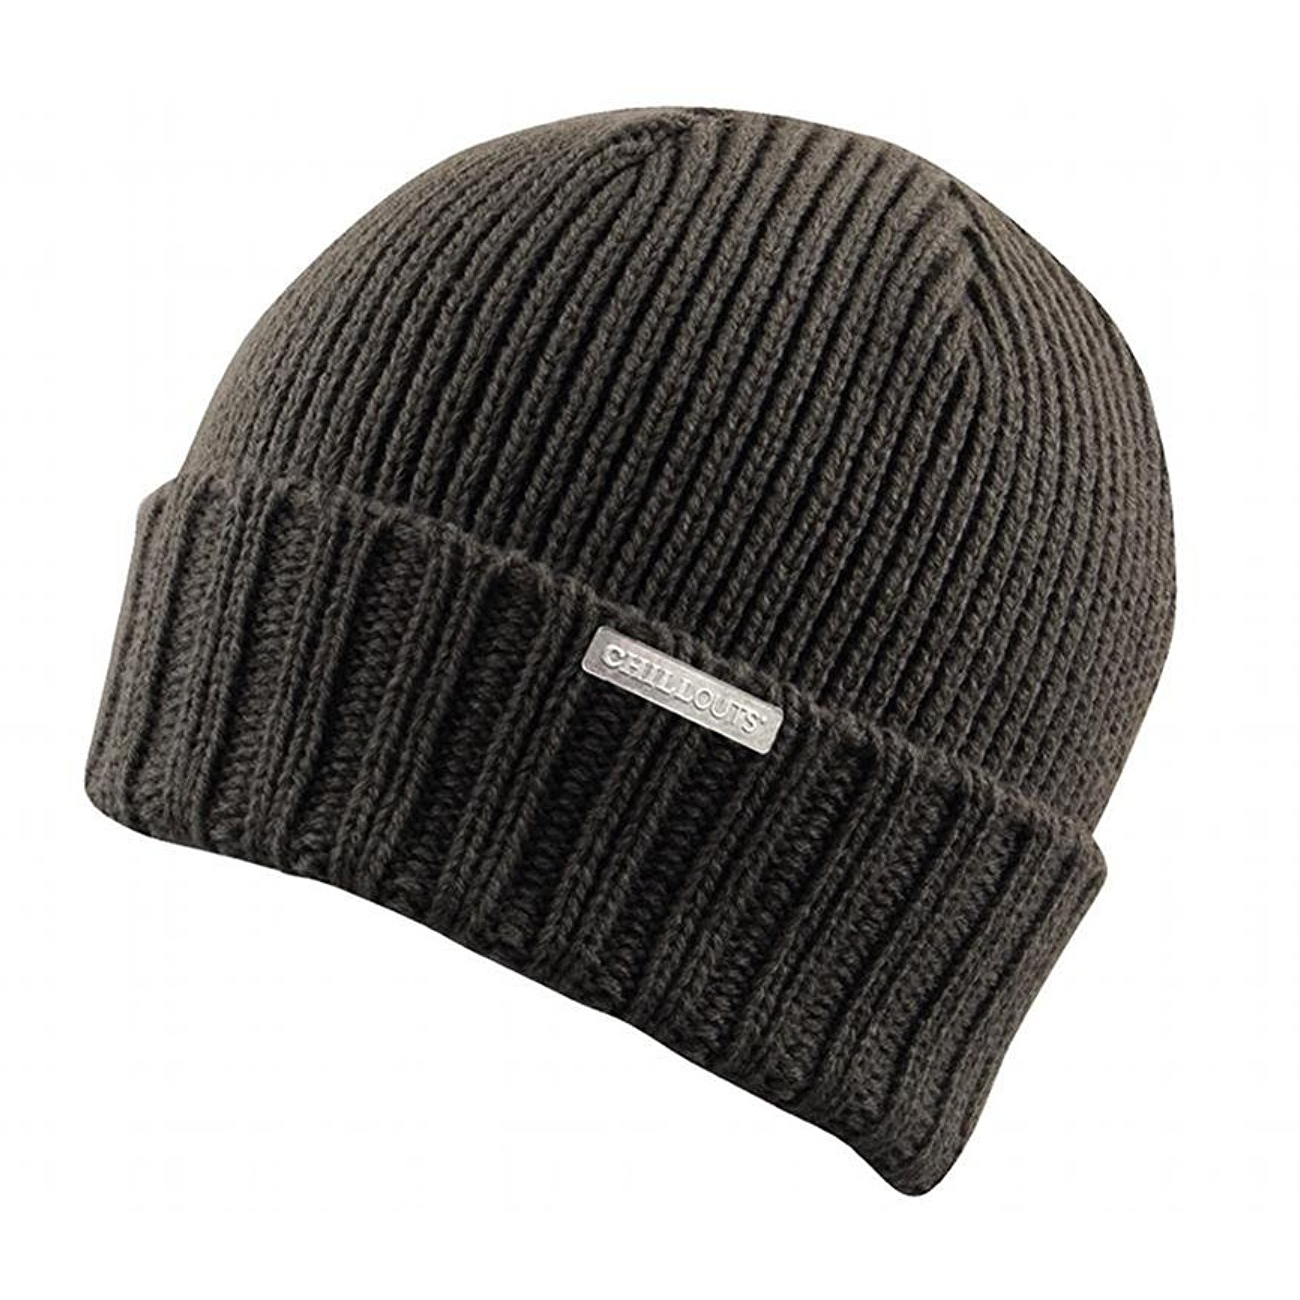 CHILLOUTS Peer Beanie